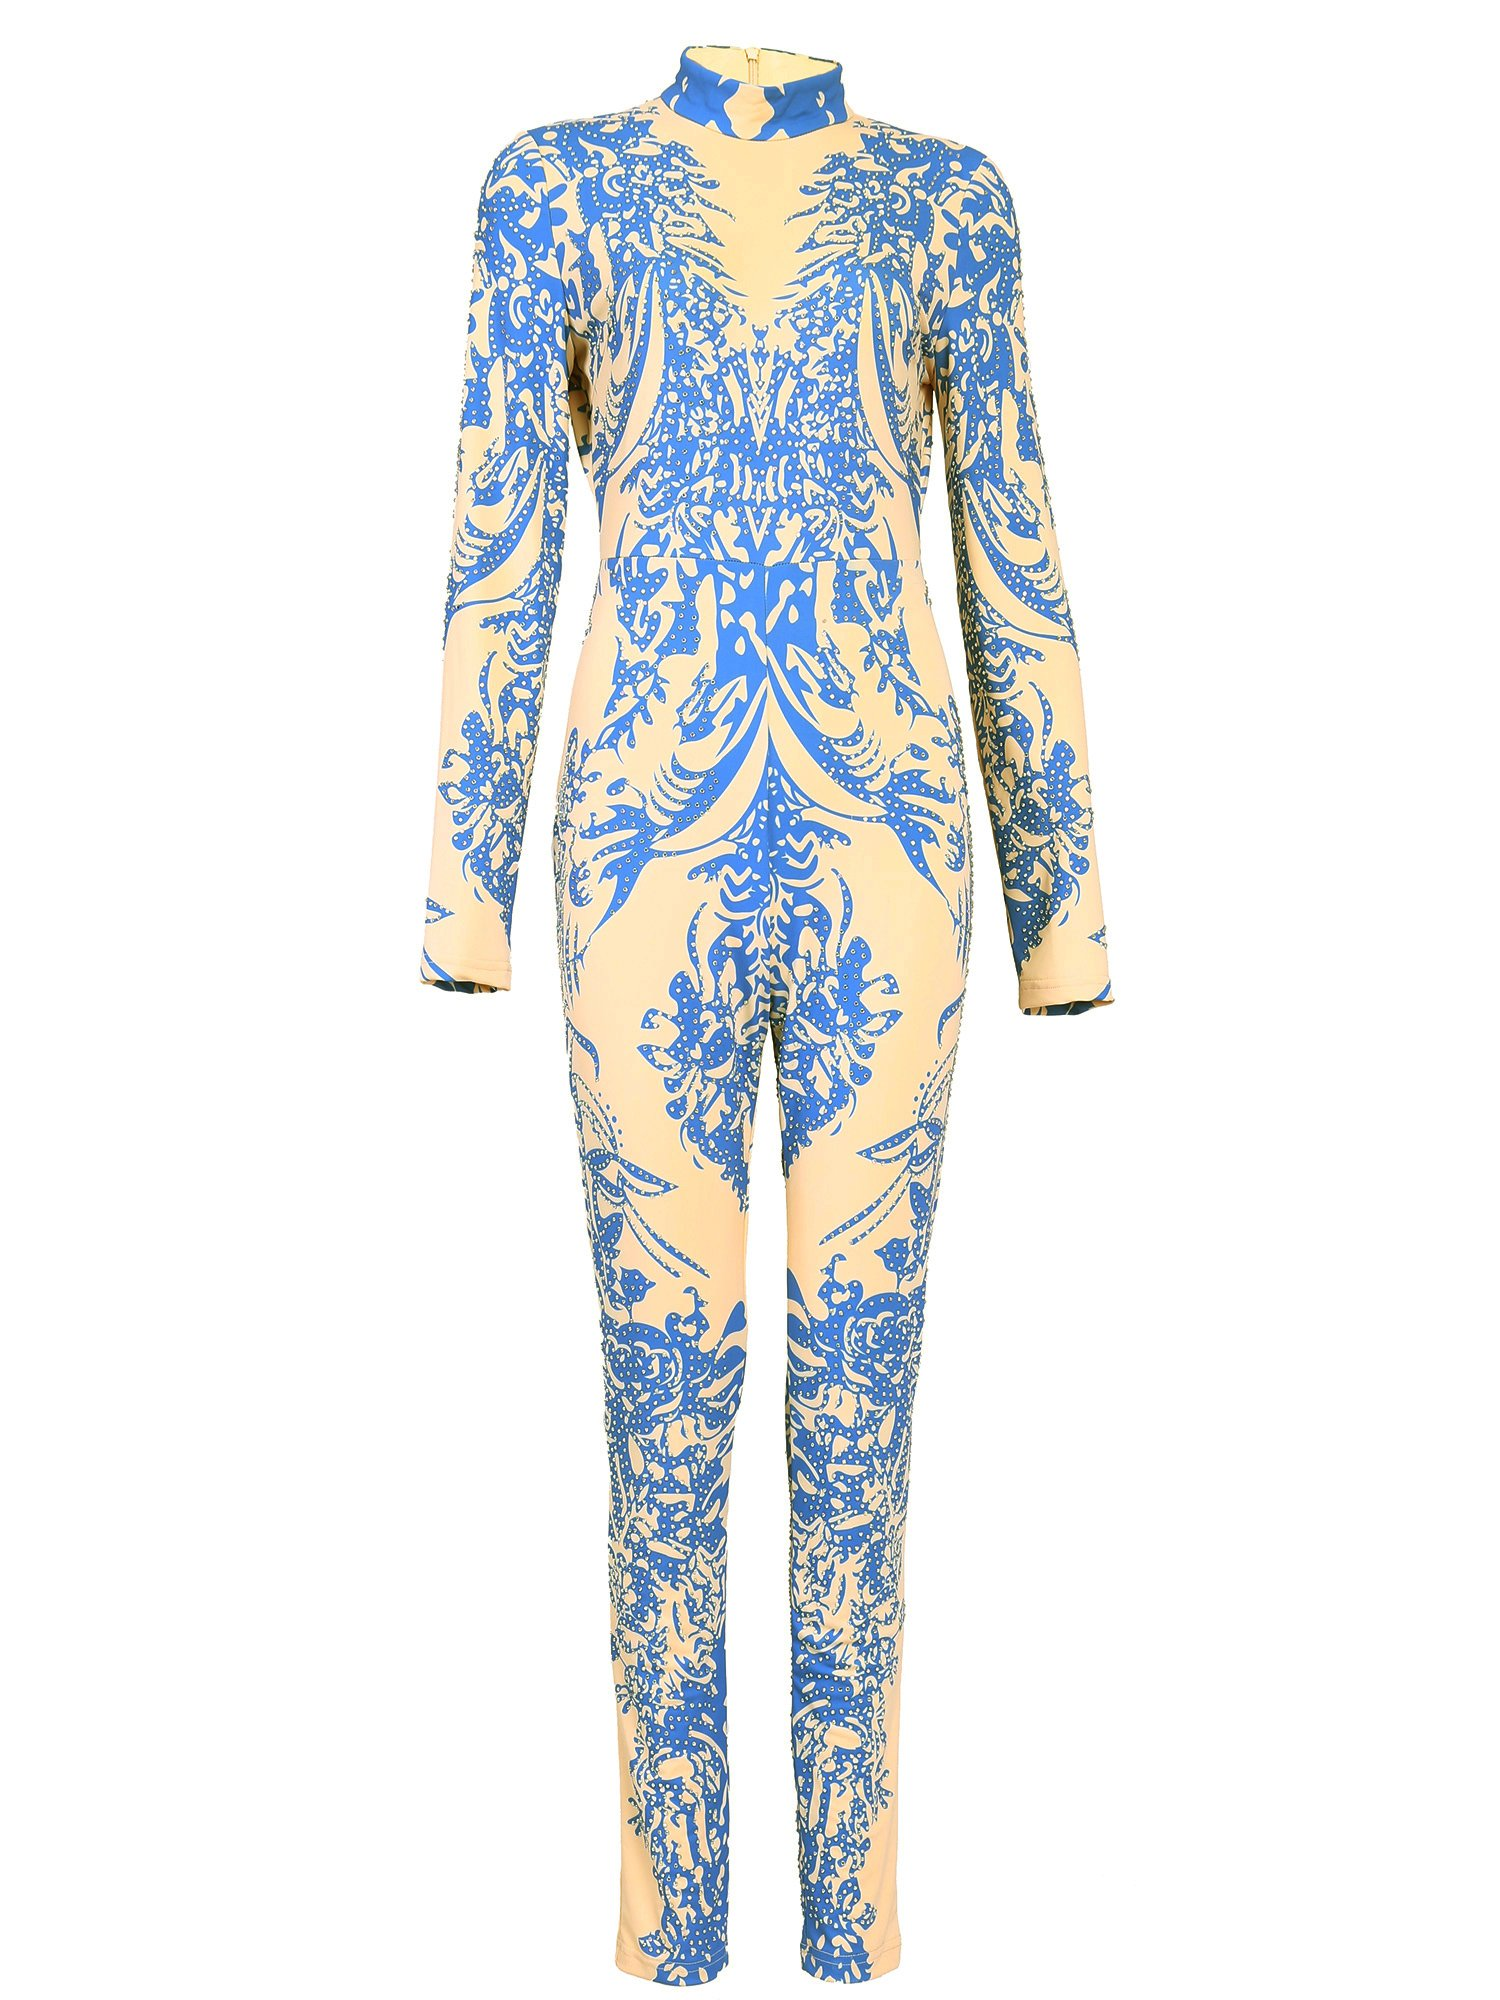 Tina Beauty Mock Neck Long Sleeve Beaded Graphic Printed One Piece Long Pants Jumpsuit Medium-Pale Blue